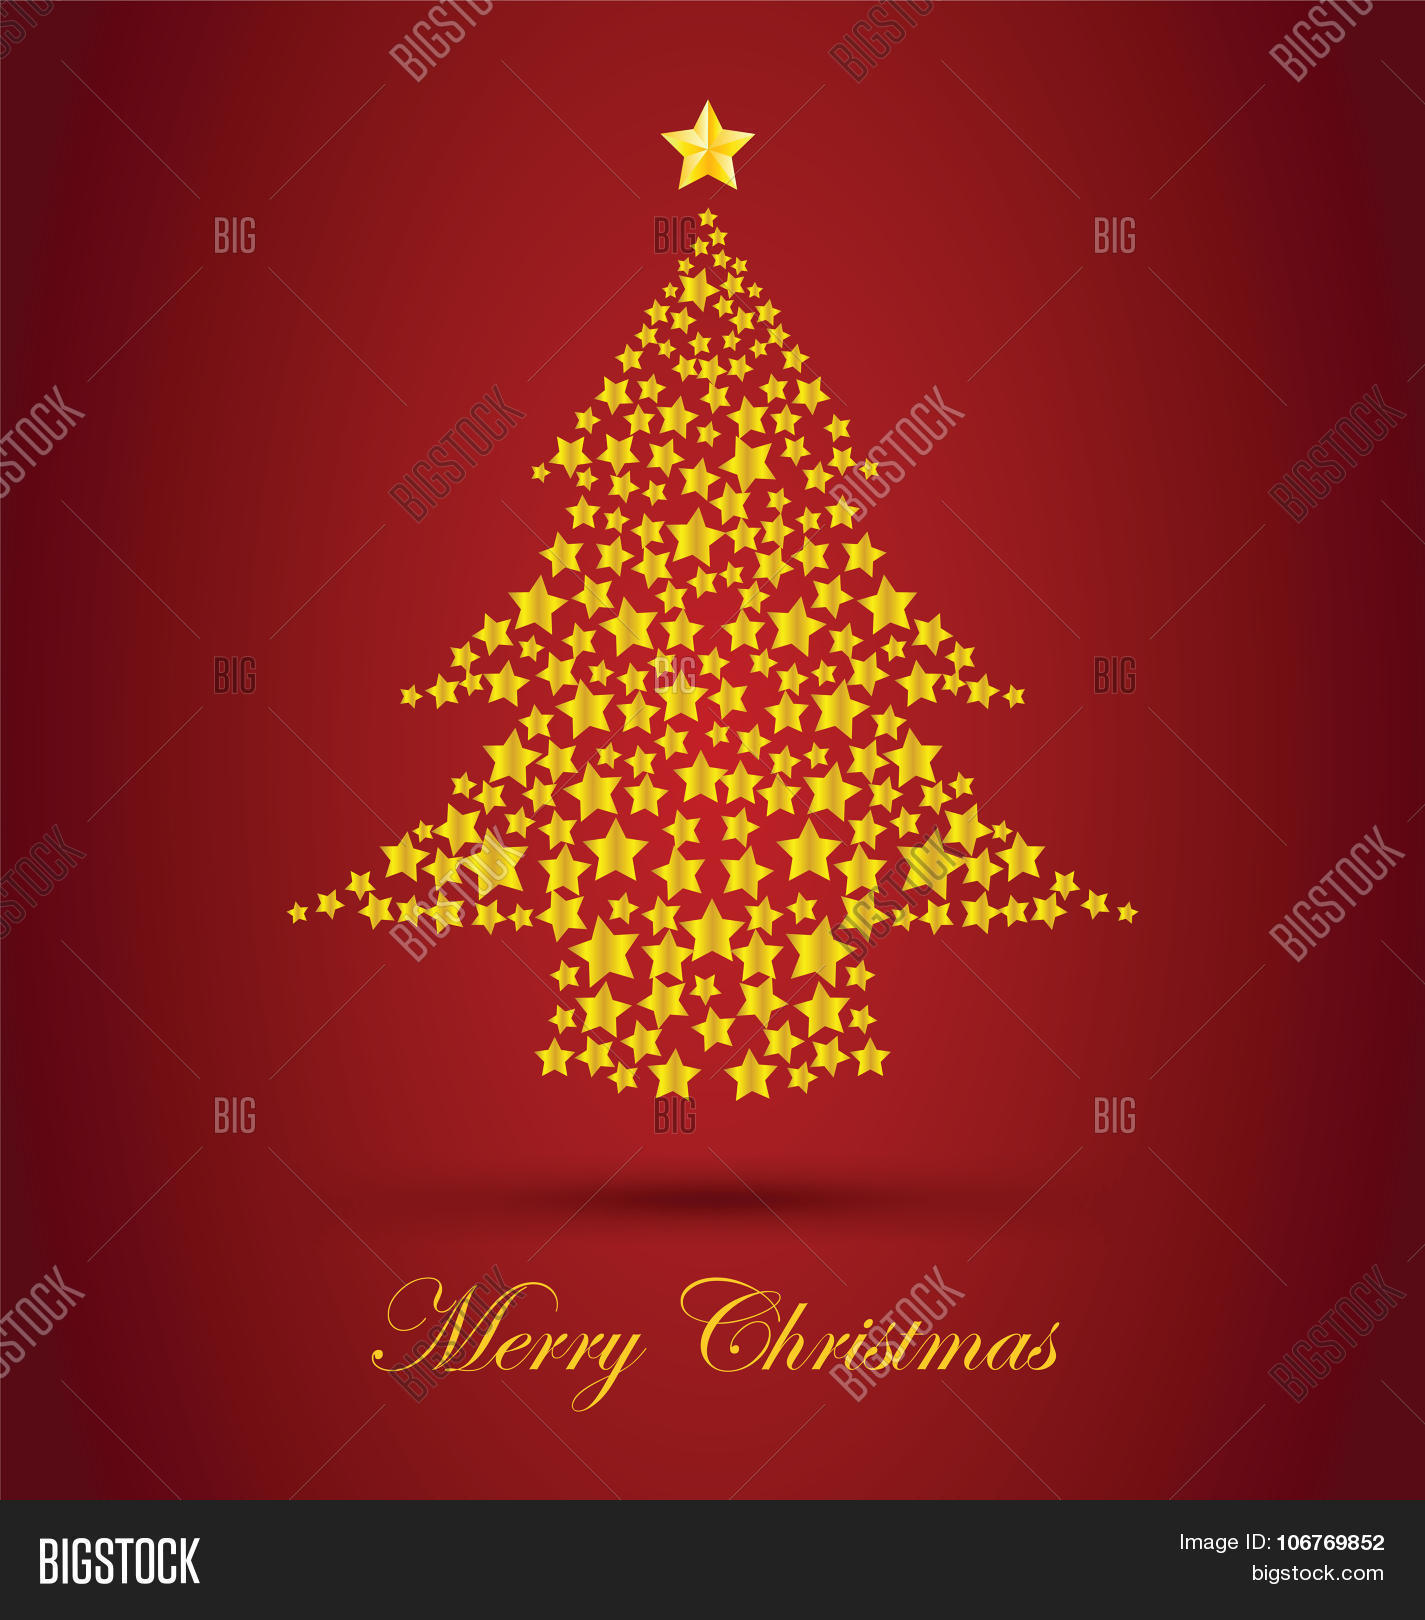 Gold Christmas Tree Vector Photo Free Trial Bigstock